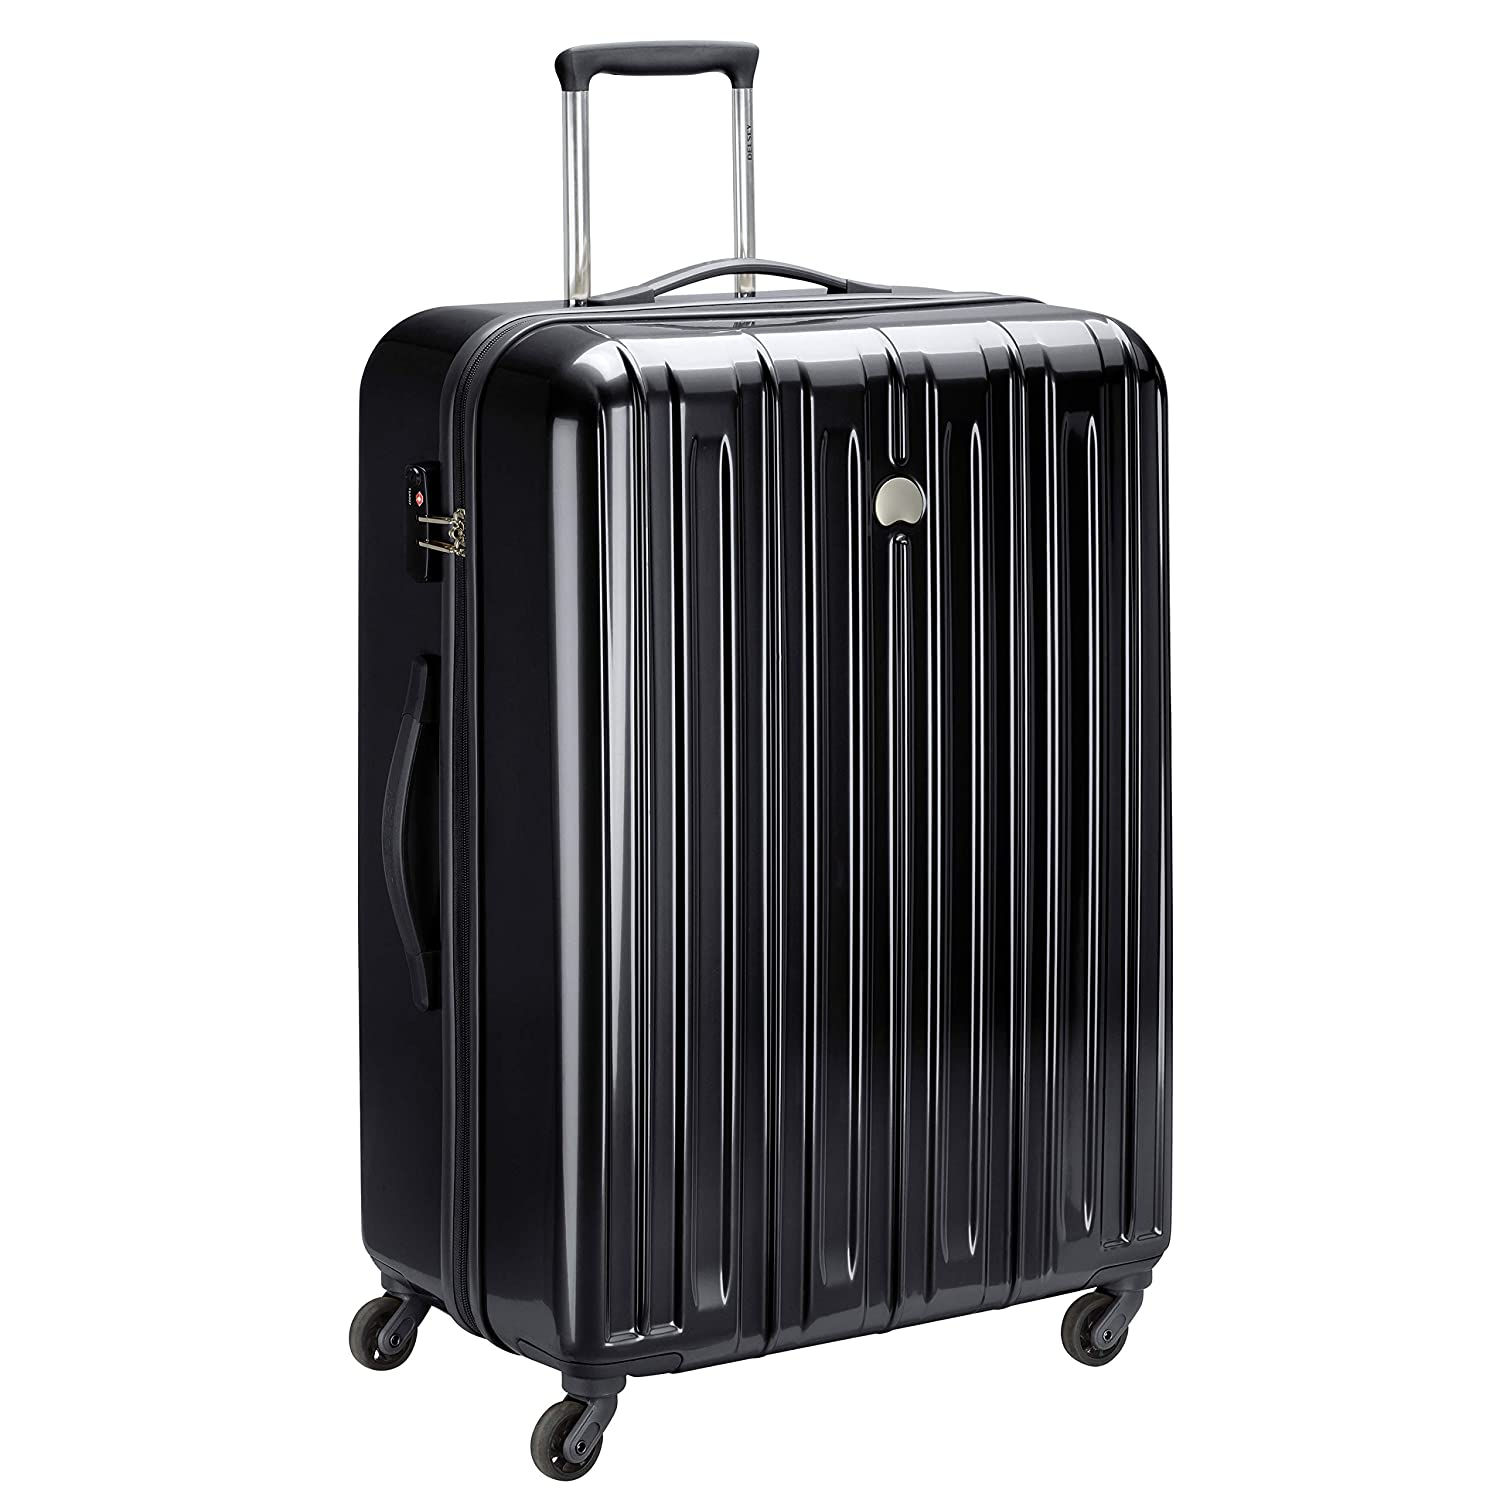 Delsey ABS 67 cms Black Hardsided Carry On (Air Longitude 2)